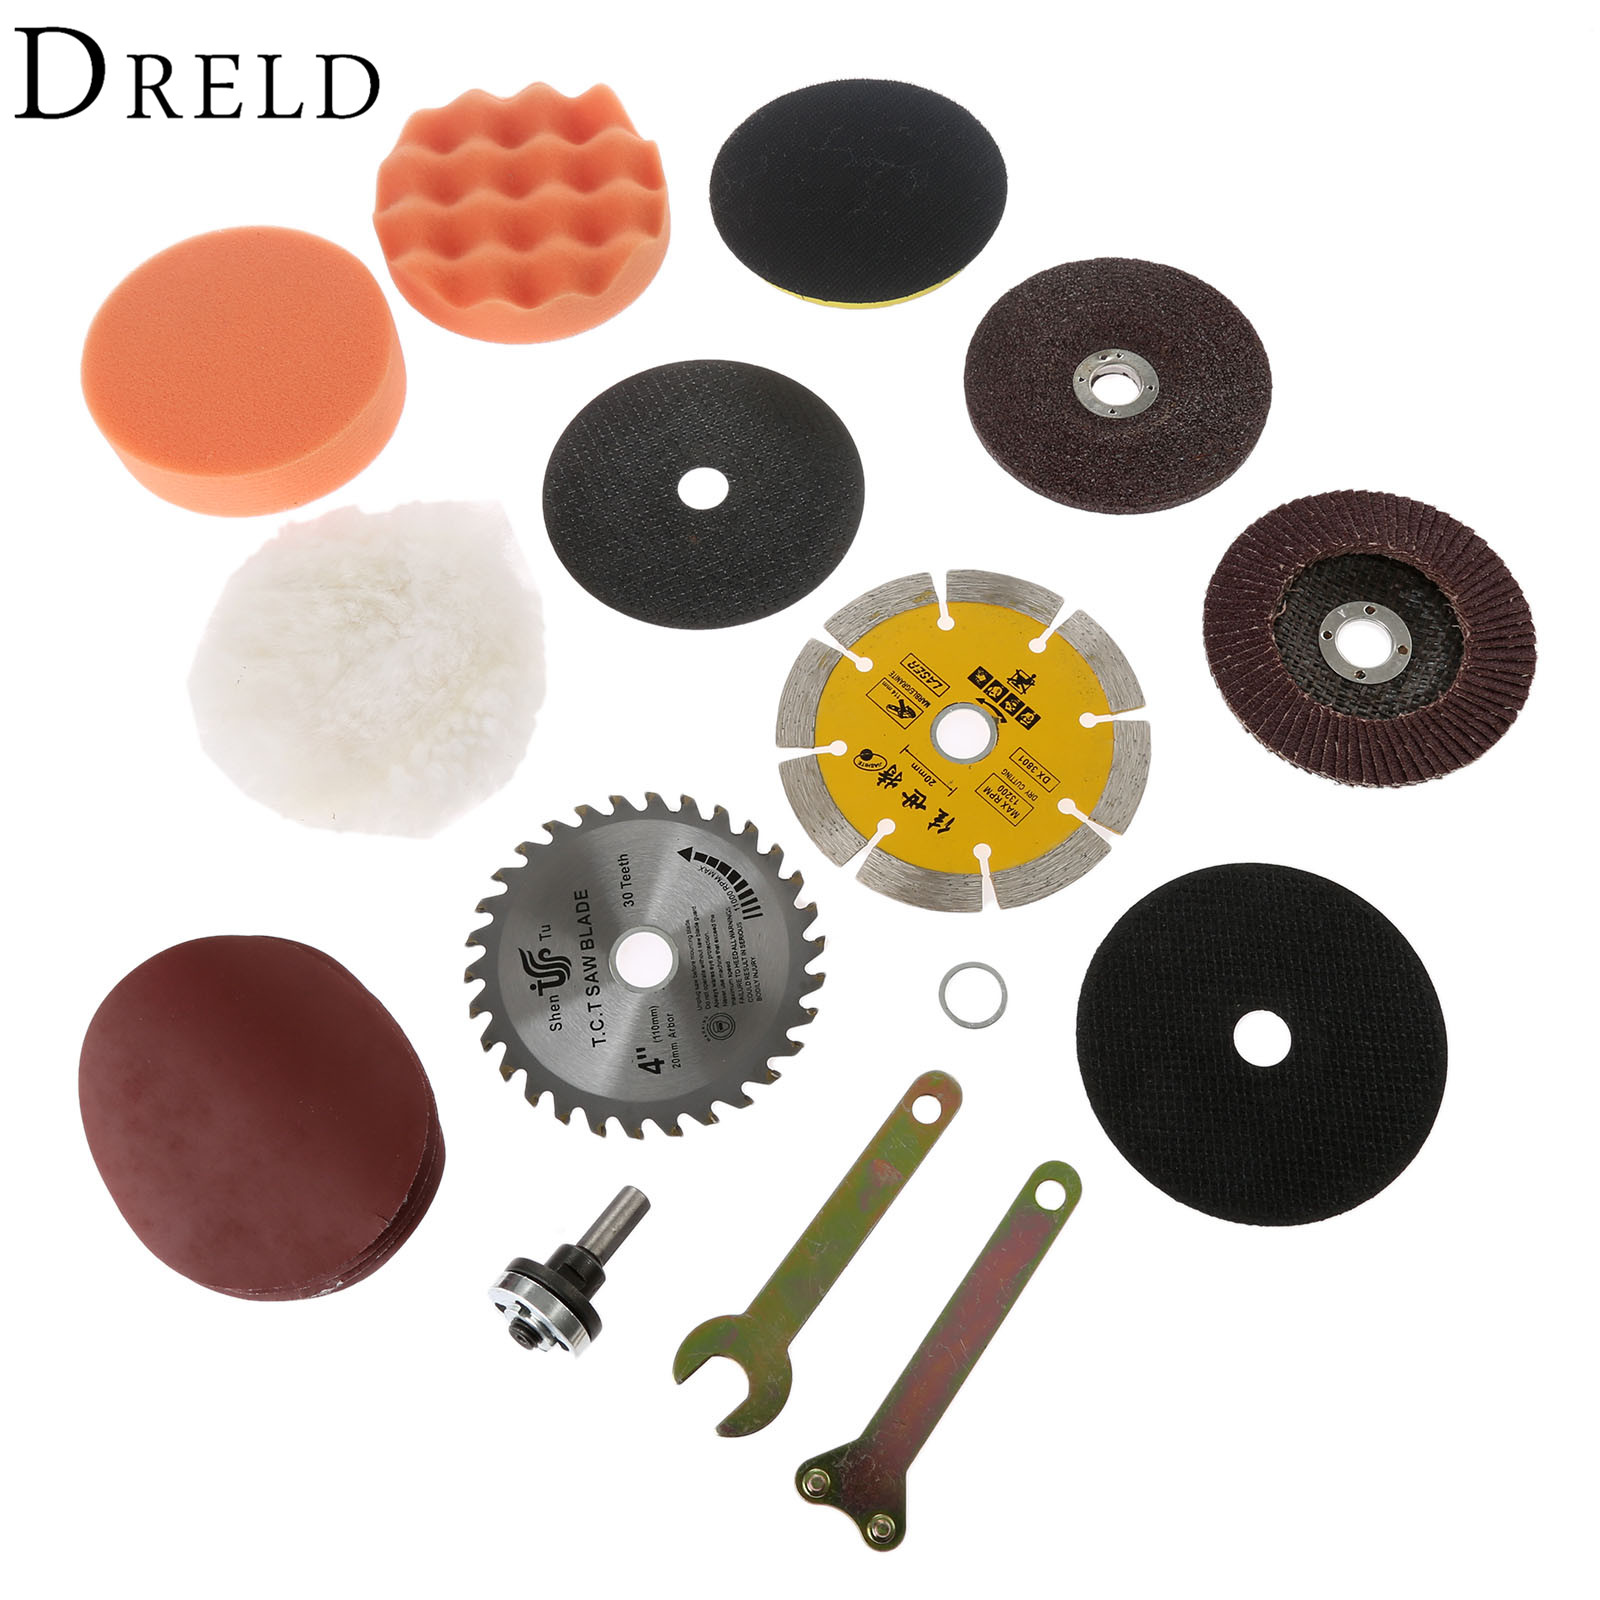 10Pcs Metal Cutting Polishing Pad Marble Grinding Wheel Saw Blade Spanner Conversion Kit for Electric Drill Power Tools